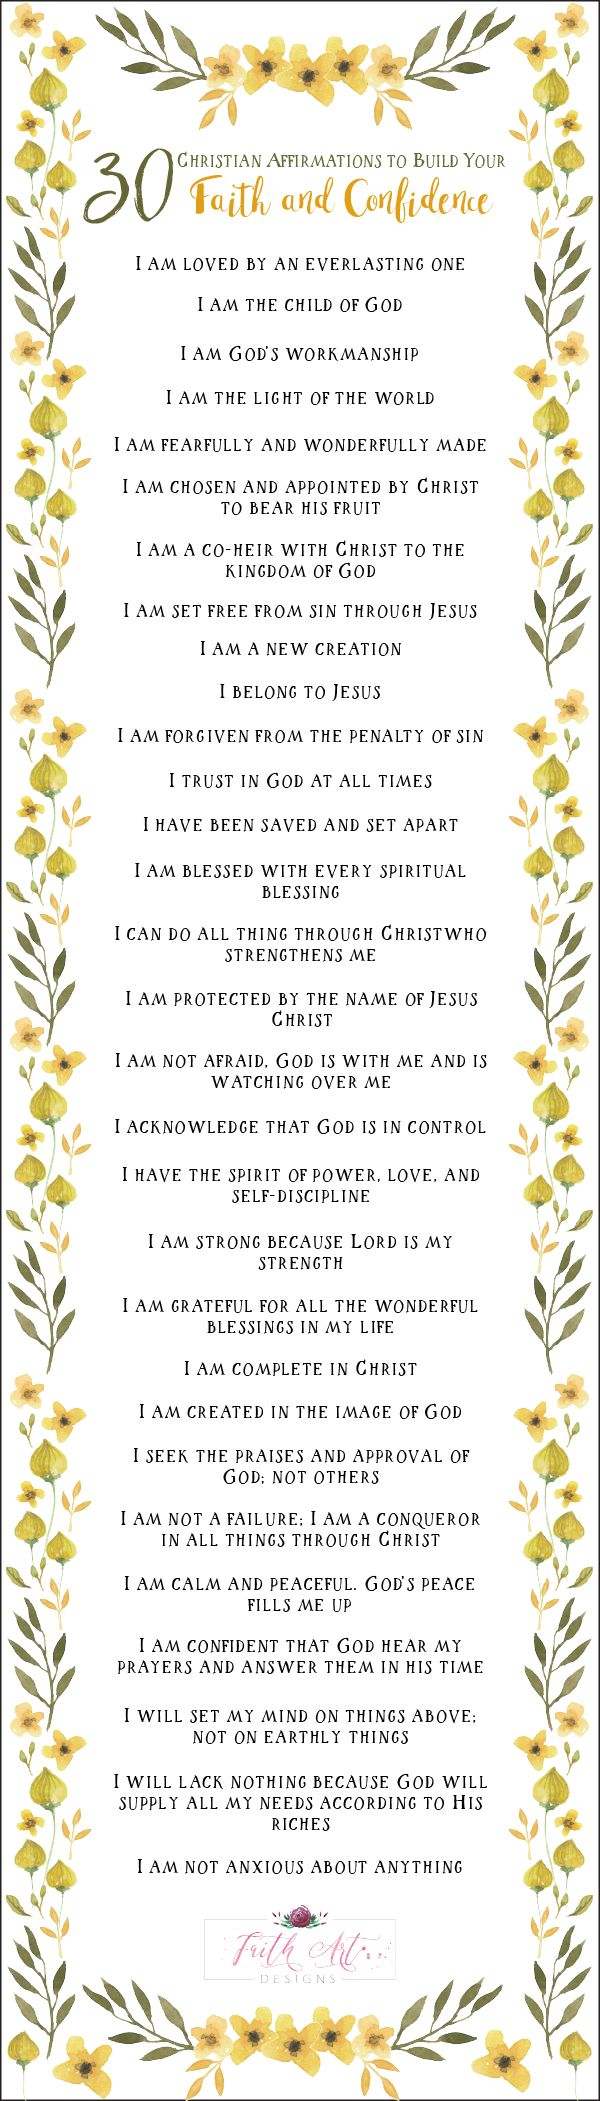 30 Christian Affirmations to Build Your Faith and Confidence